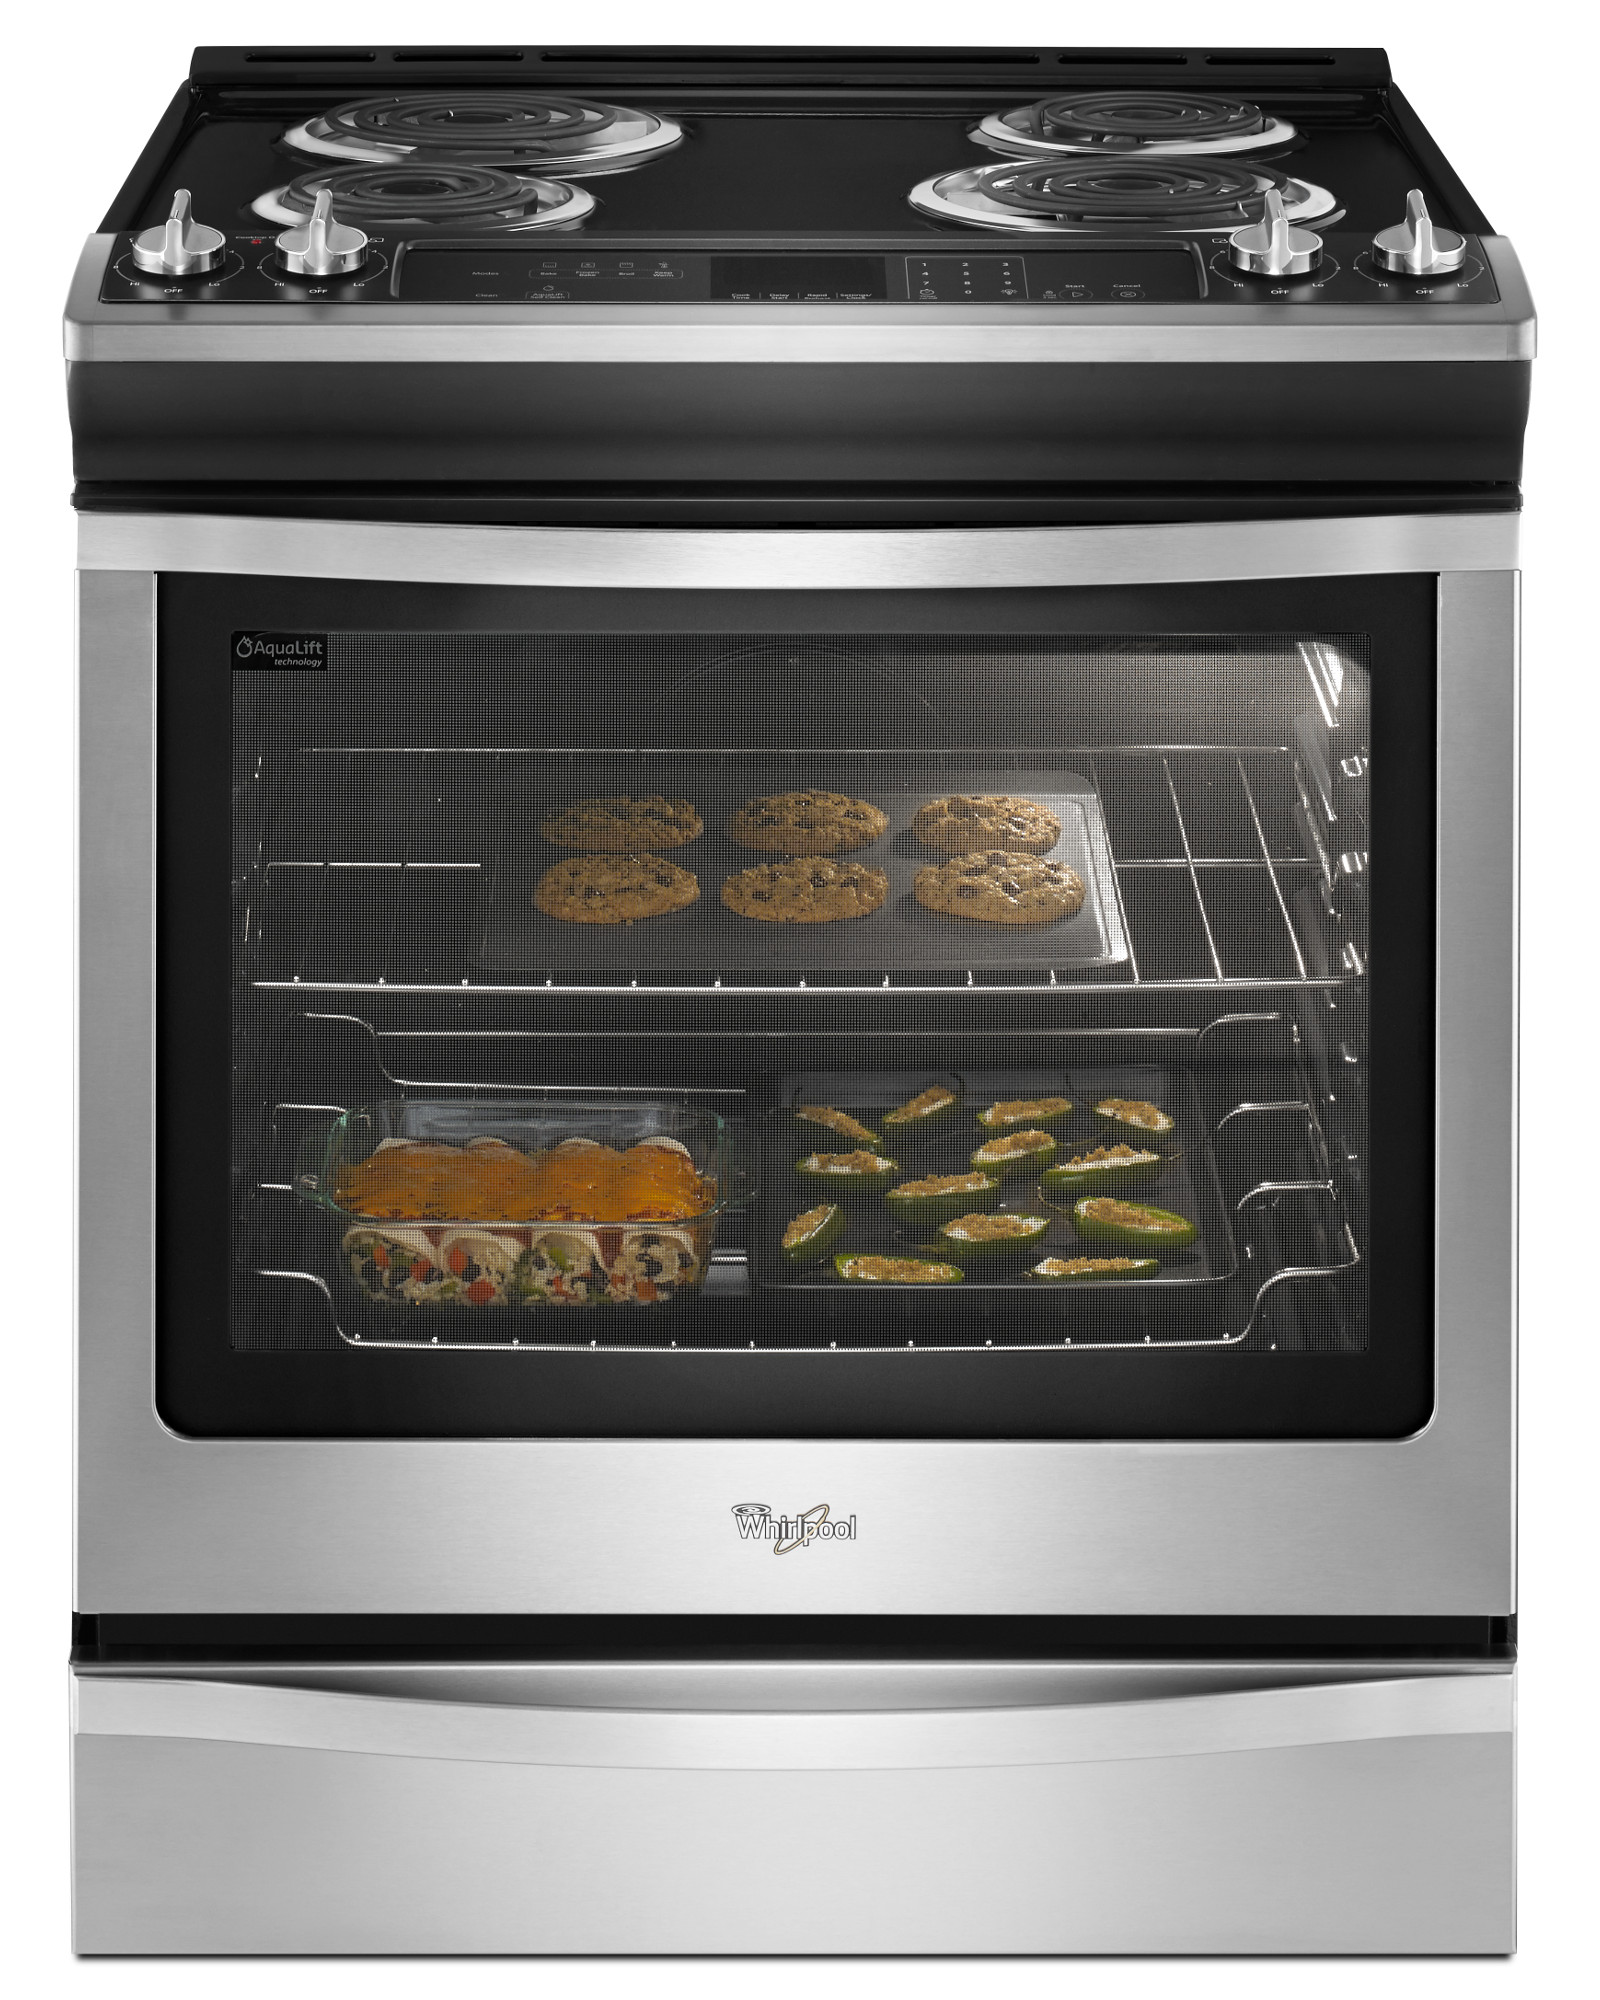 Whirlpool WEC530H0DS 6.2 cu. ft. Slide-In Electric Range - Stainless Steel